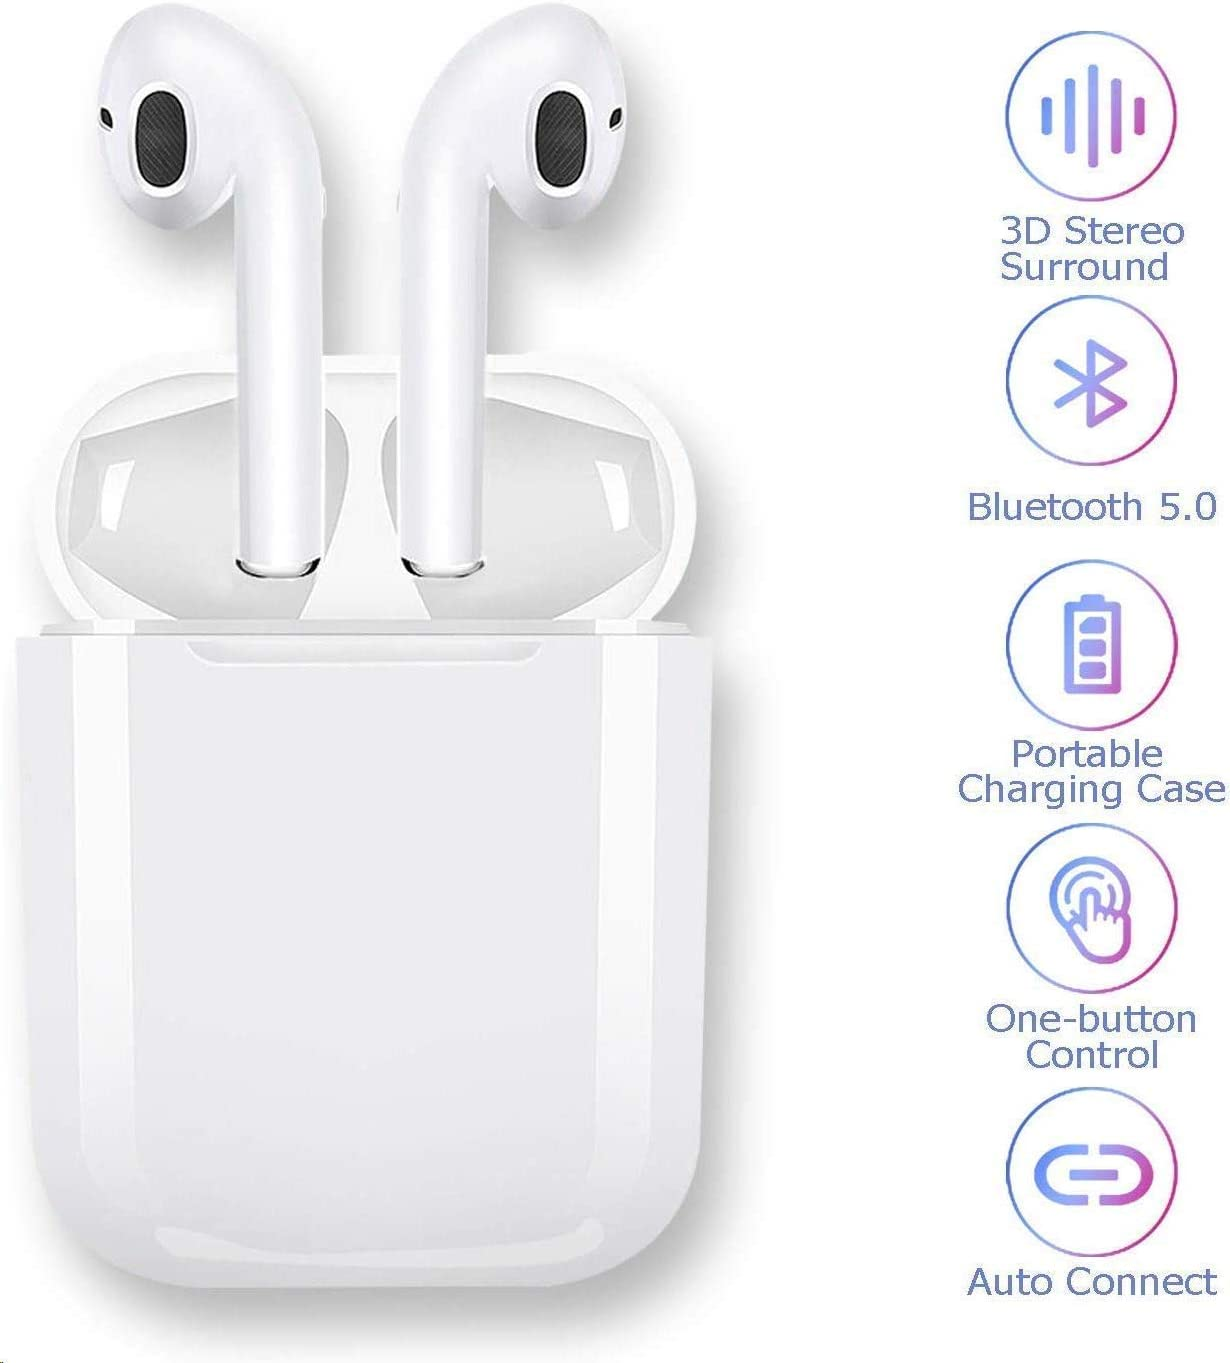 Bluetooth 5.0 Headset Earbuds Bluetooth Headphones 3D Stereo IPX5 Waterproof Pop-ups Auto Pairing Fast Charging for Samsung iPhone Apple of airpod and Airpods Sports Earphone